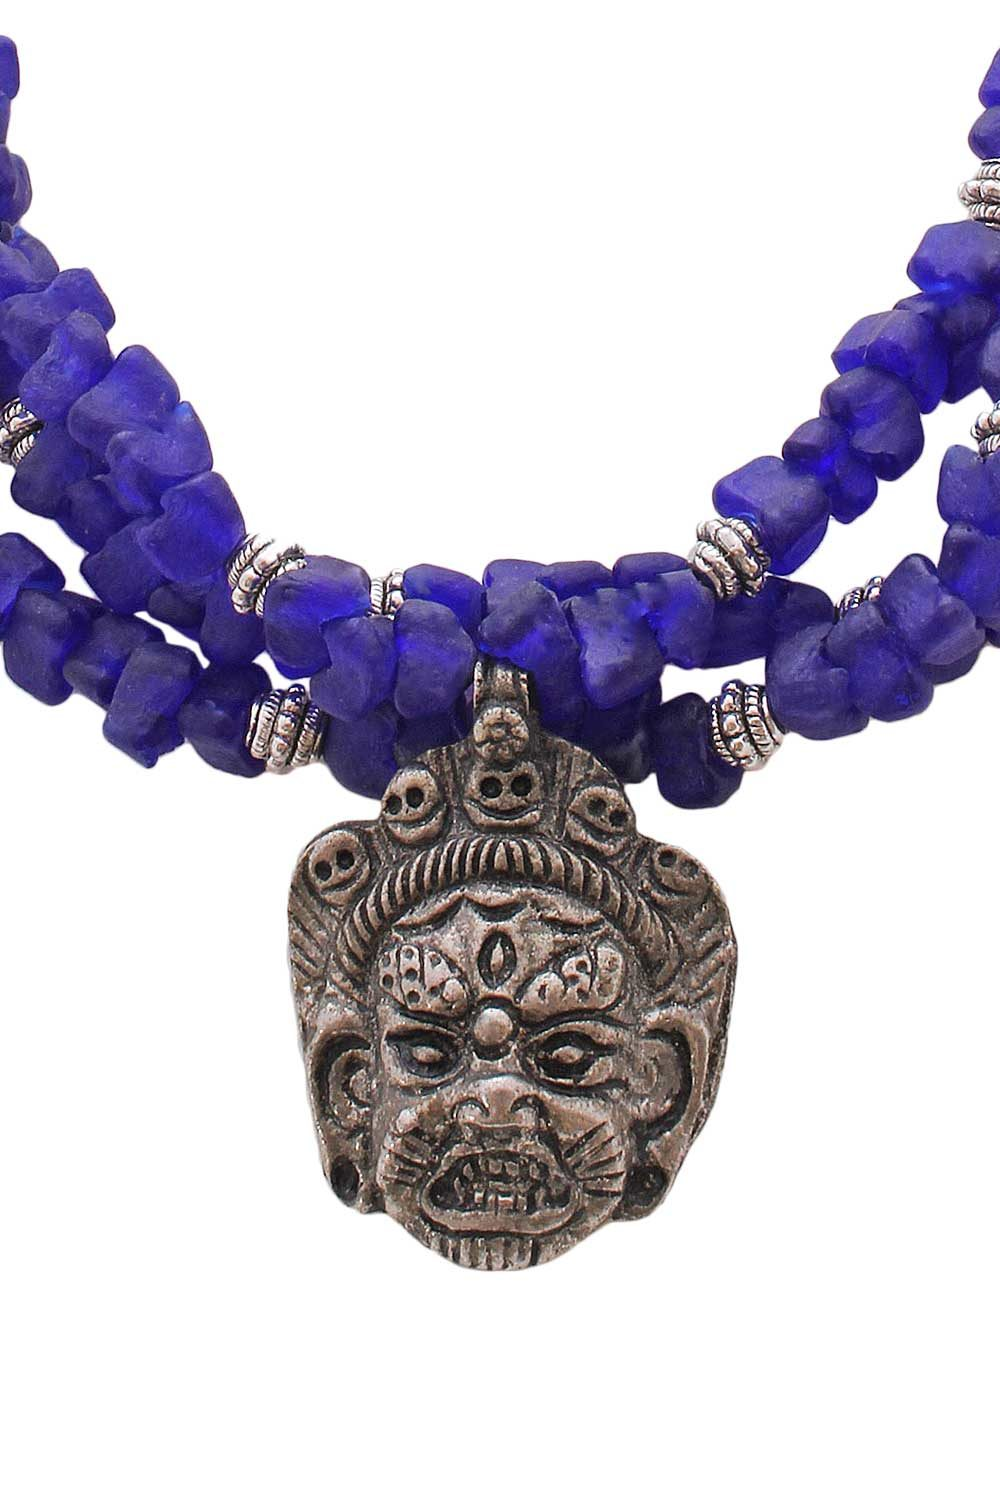 Tibetan Buddhist Mahakala Amulet Necklace by SHIKHAZURI